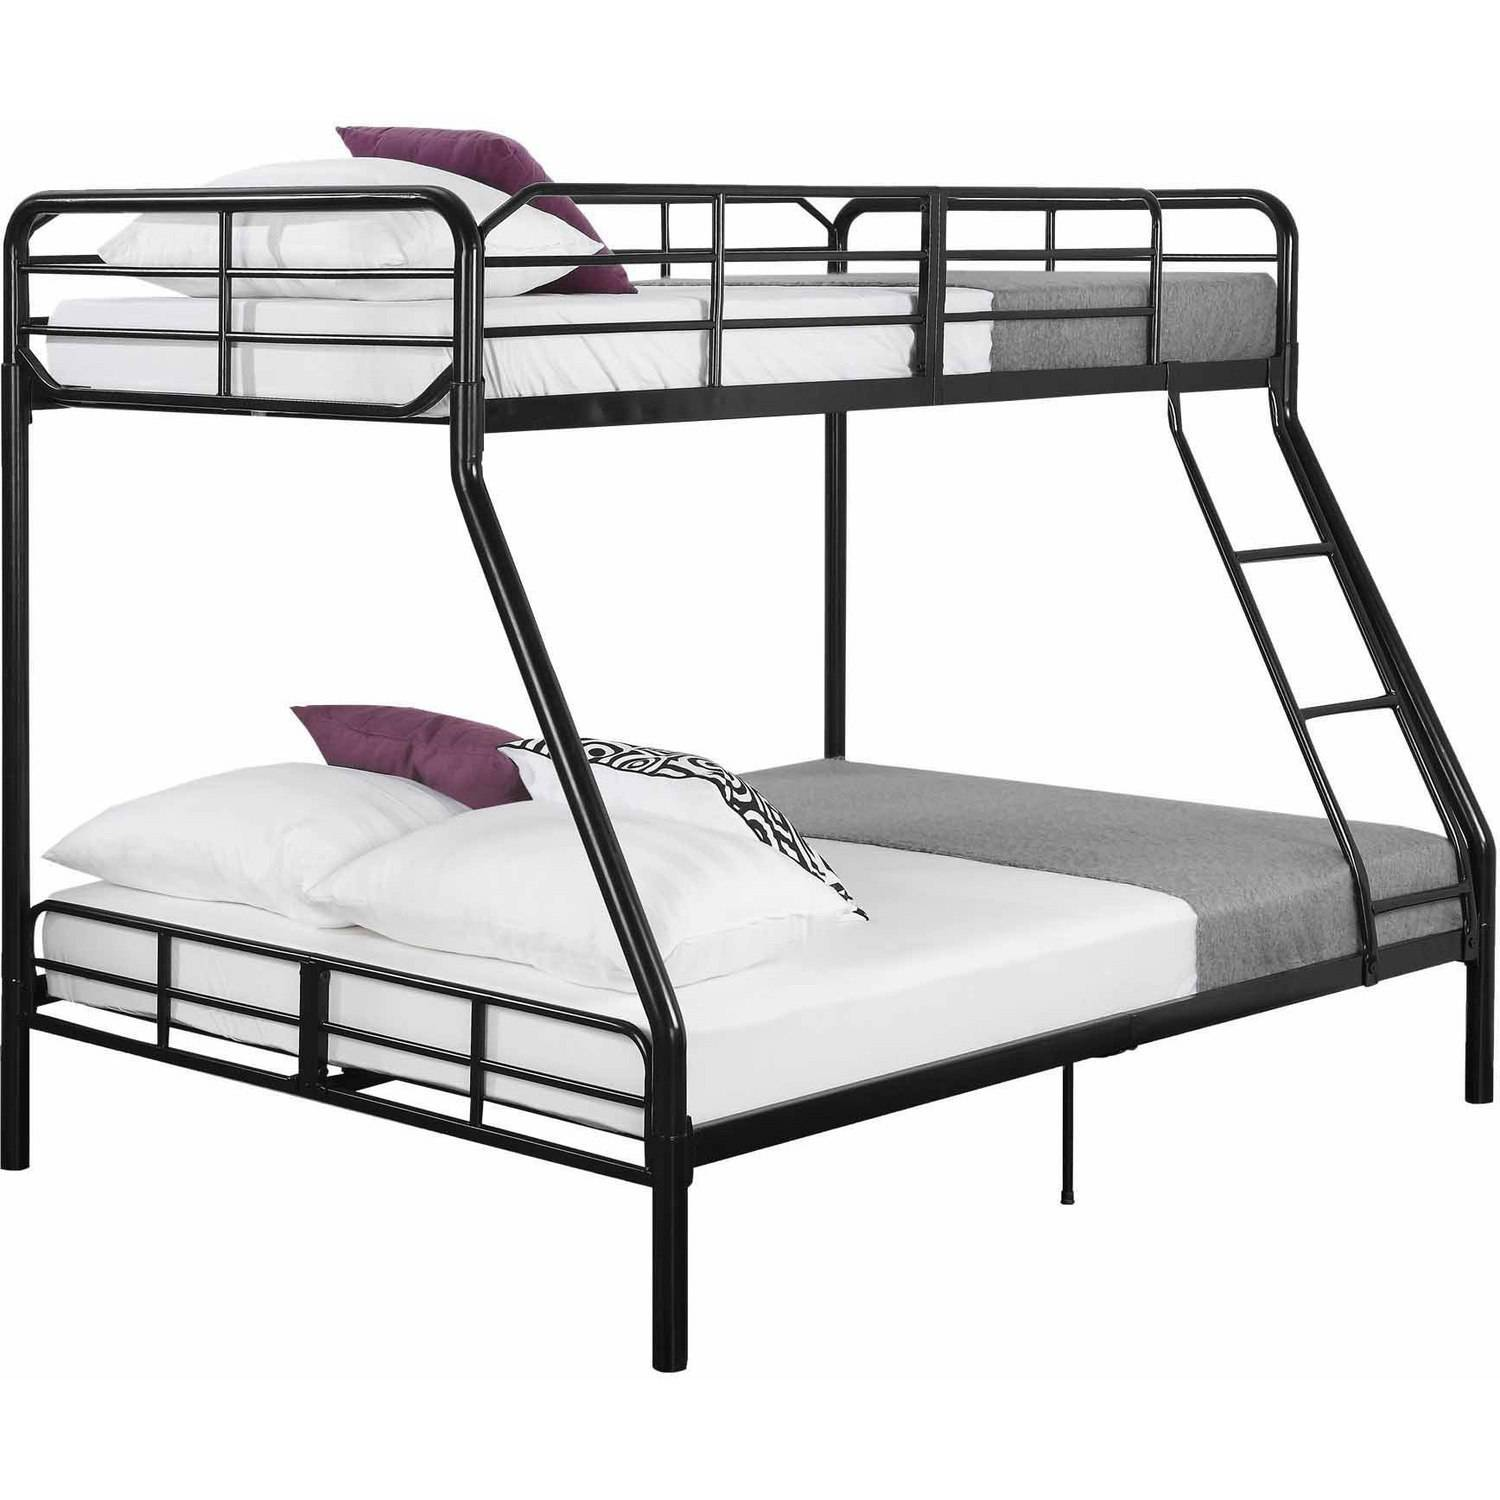 Mainstays Twin Over Full Metal Sturdy Bunk Bed, Black